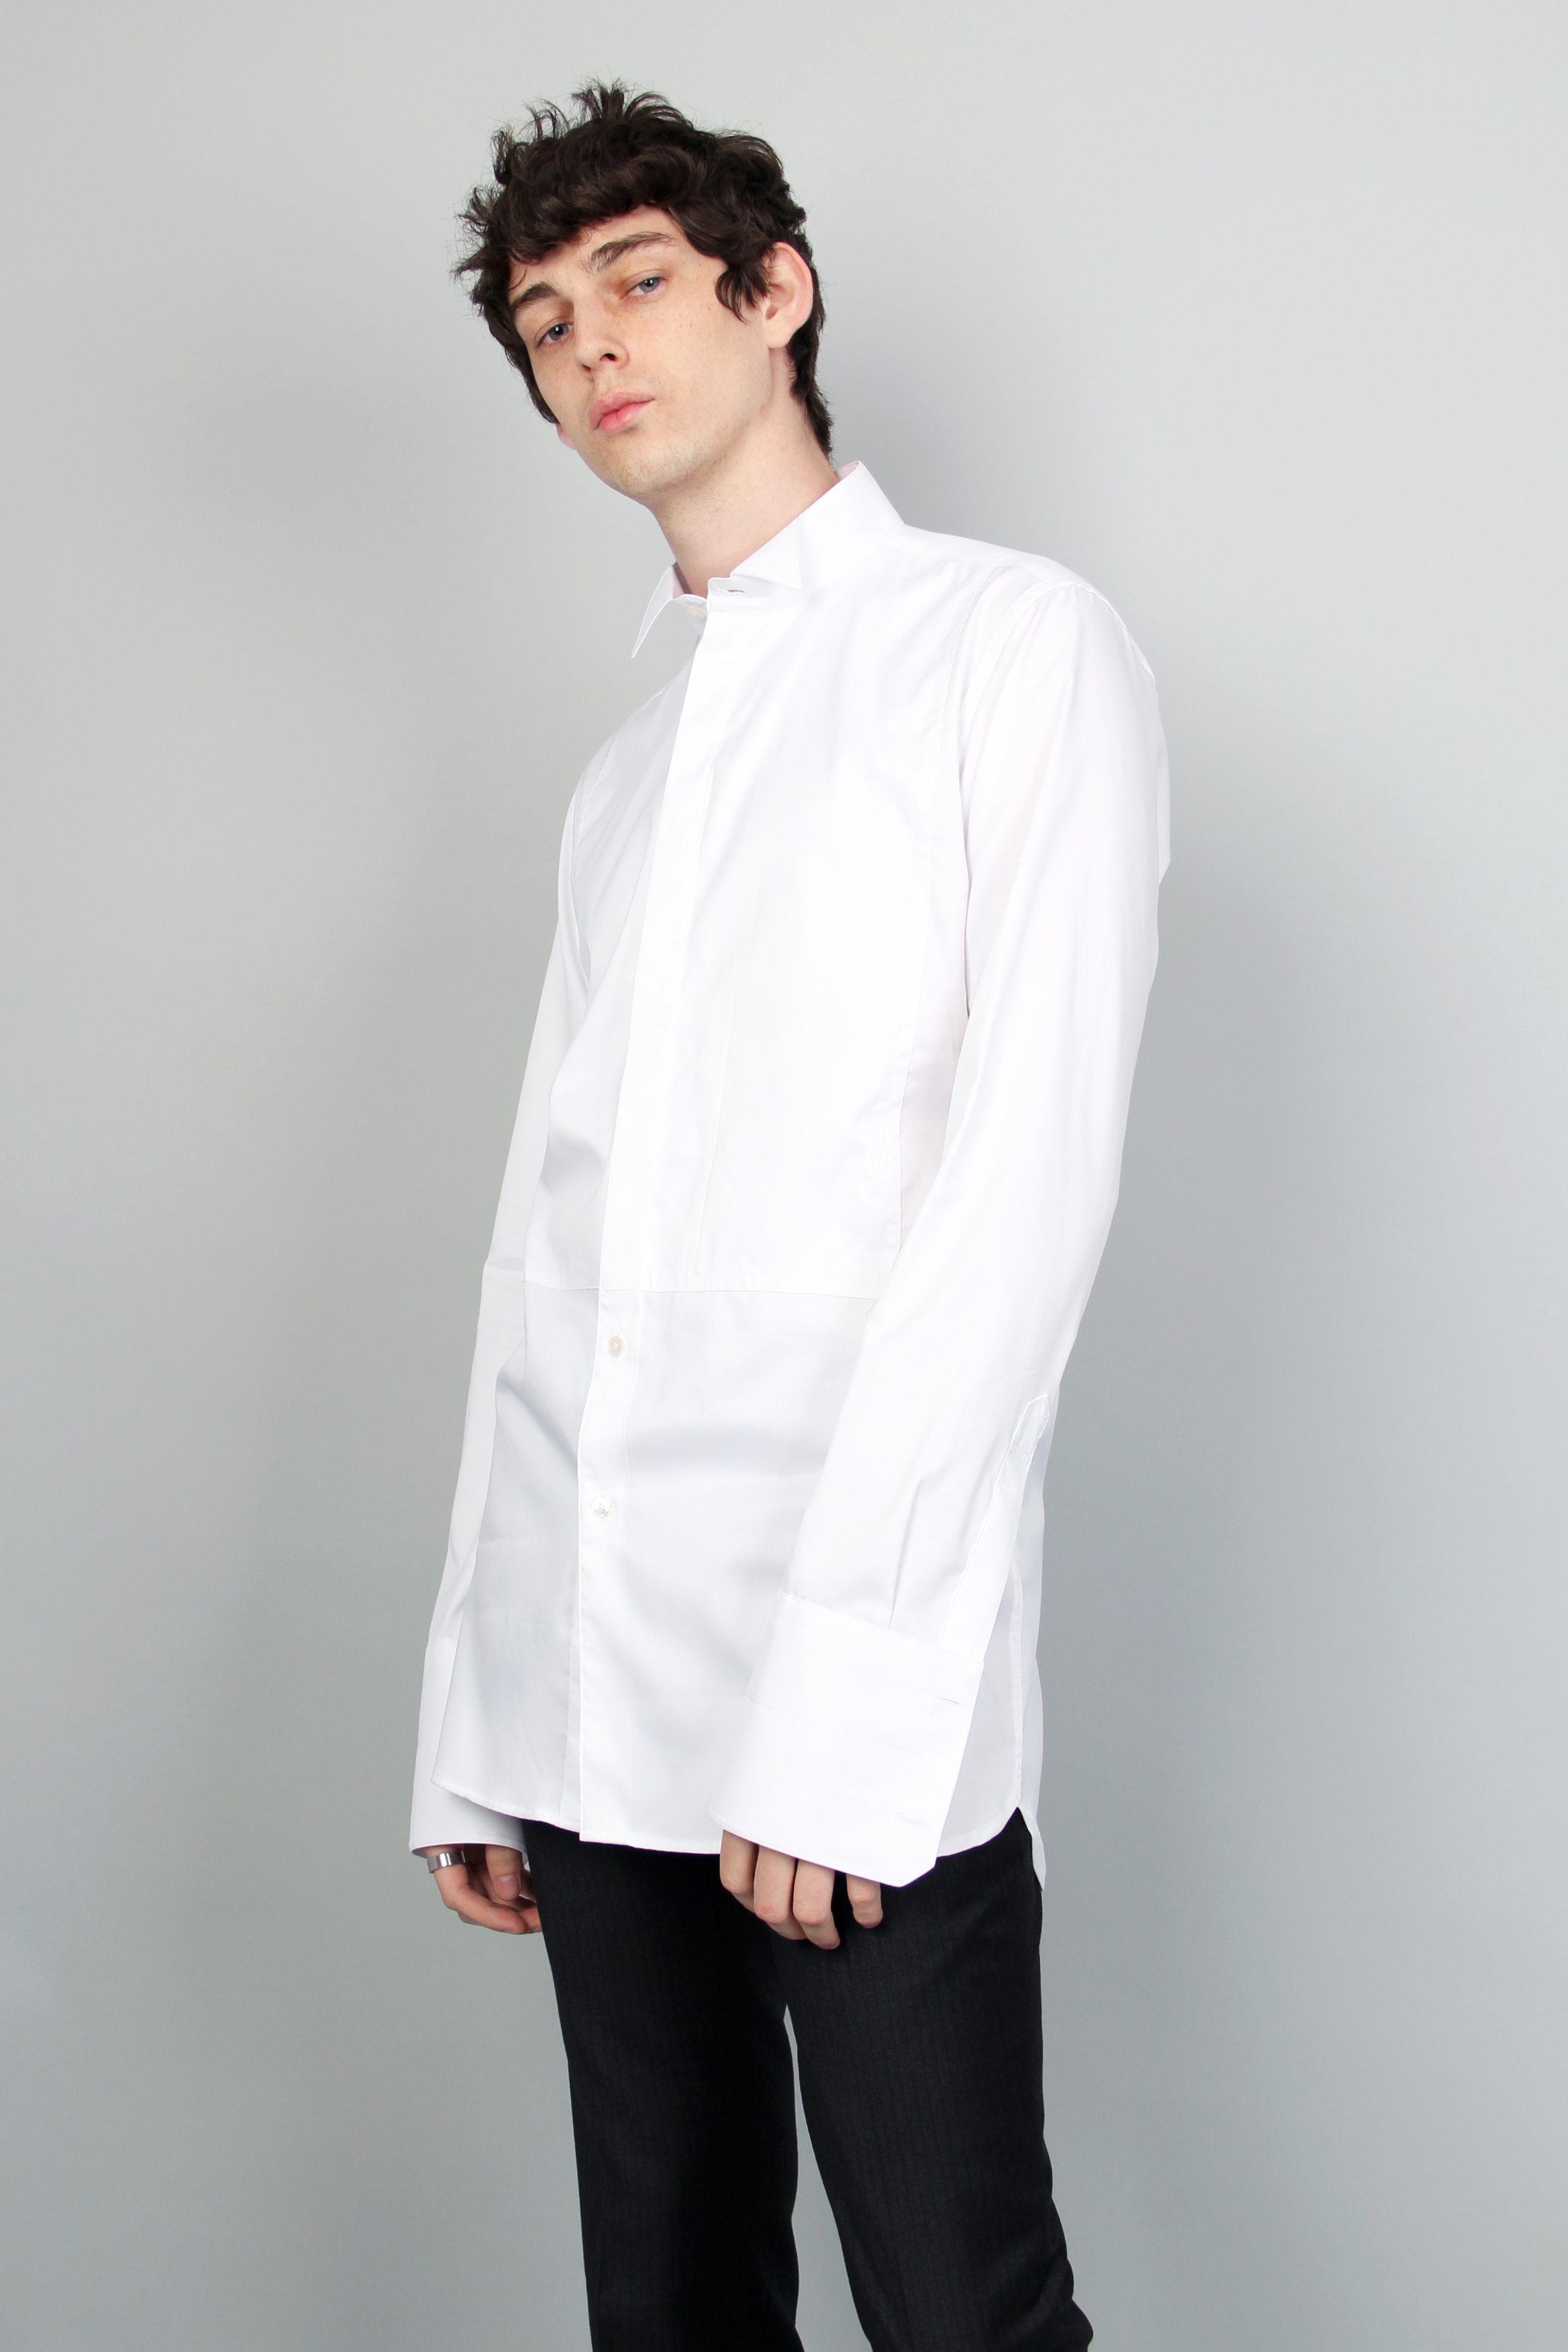 [바로닐] [존바로닐] Cotton poplin evening shirt